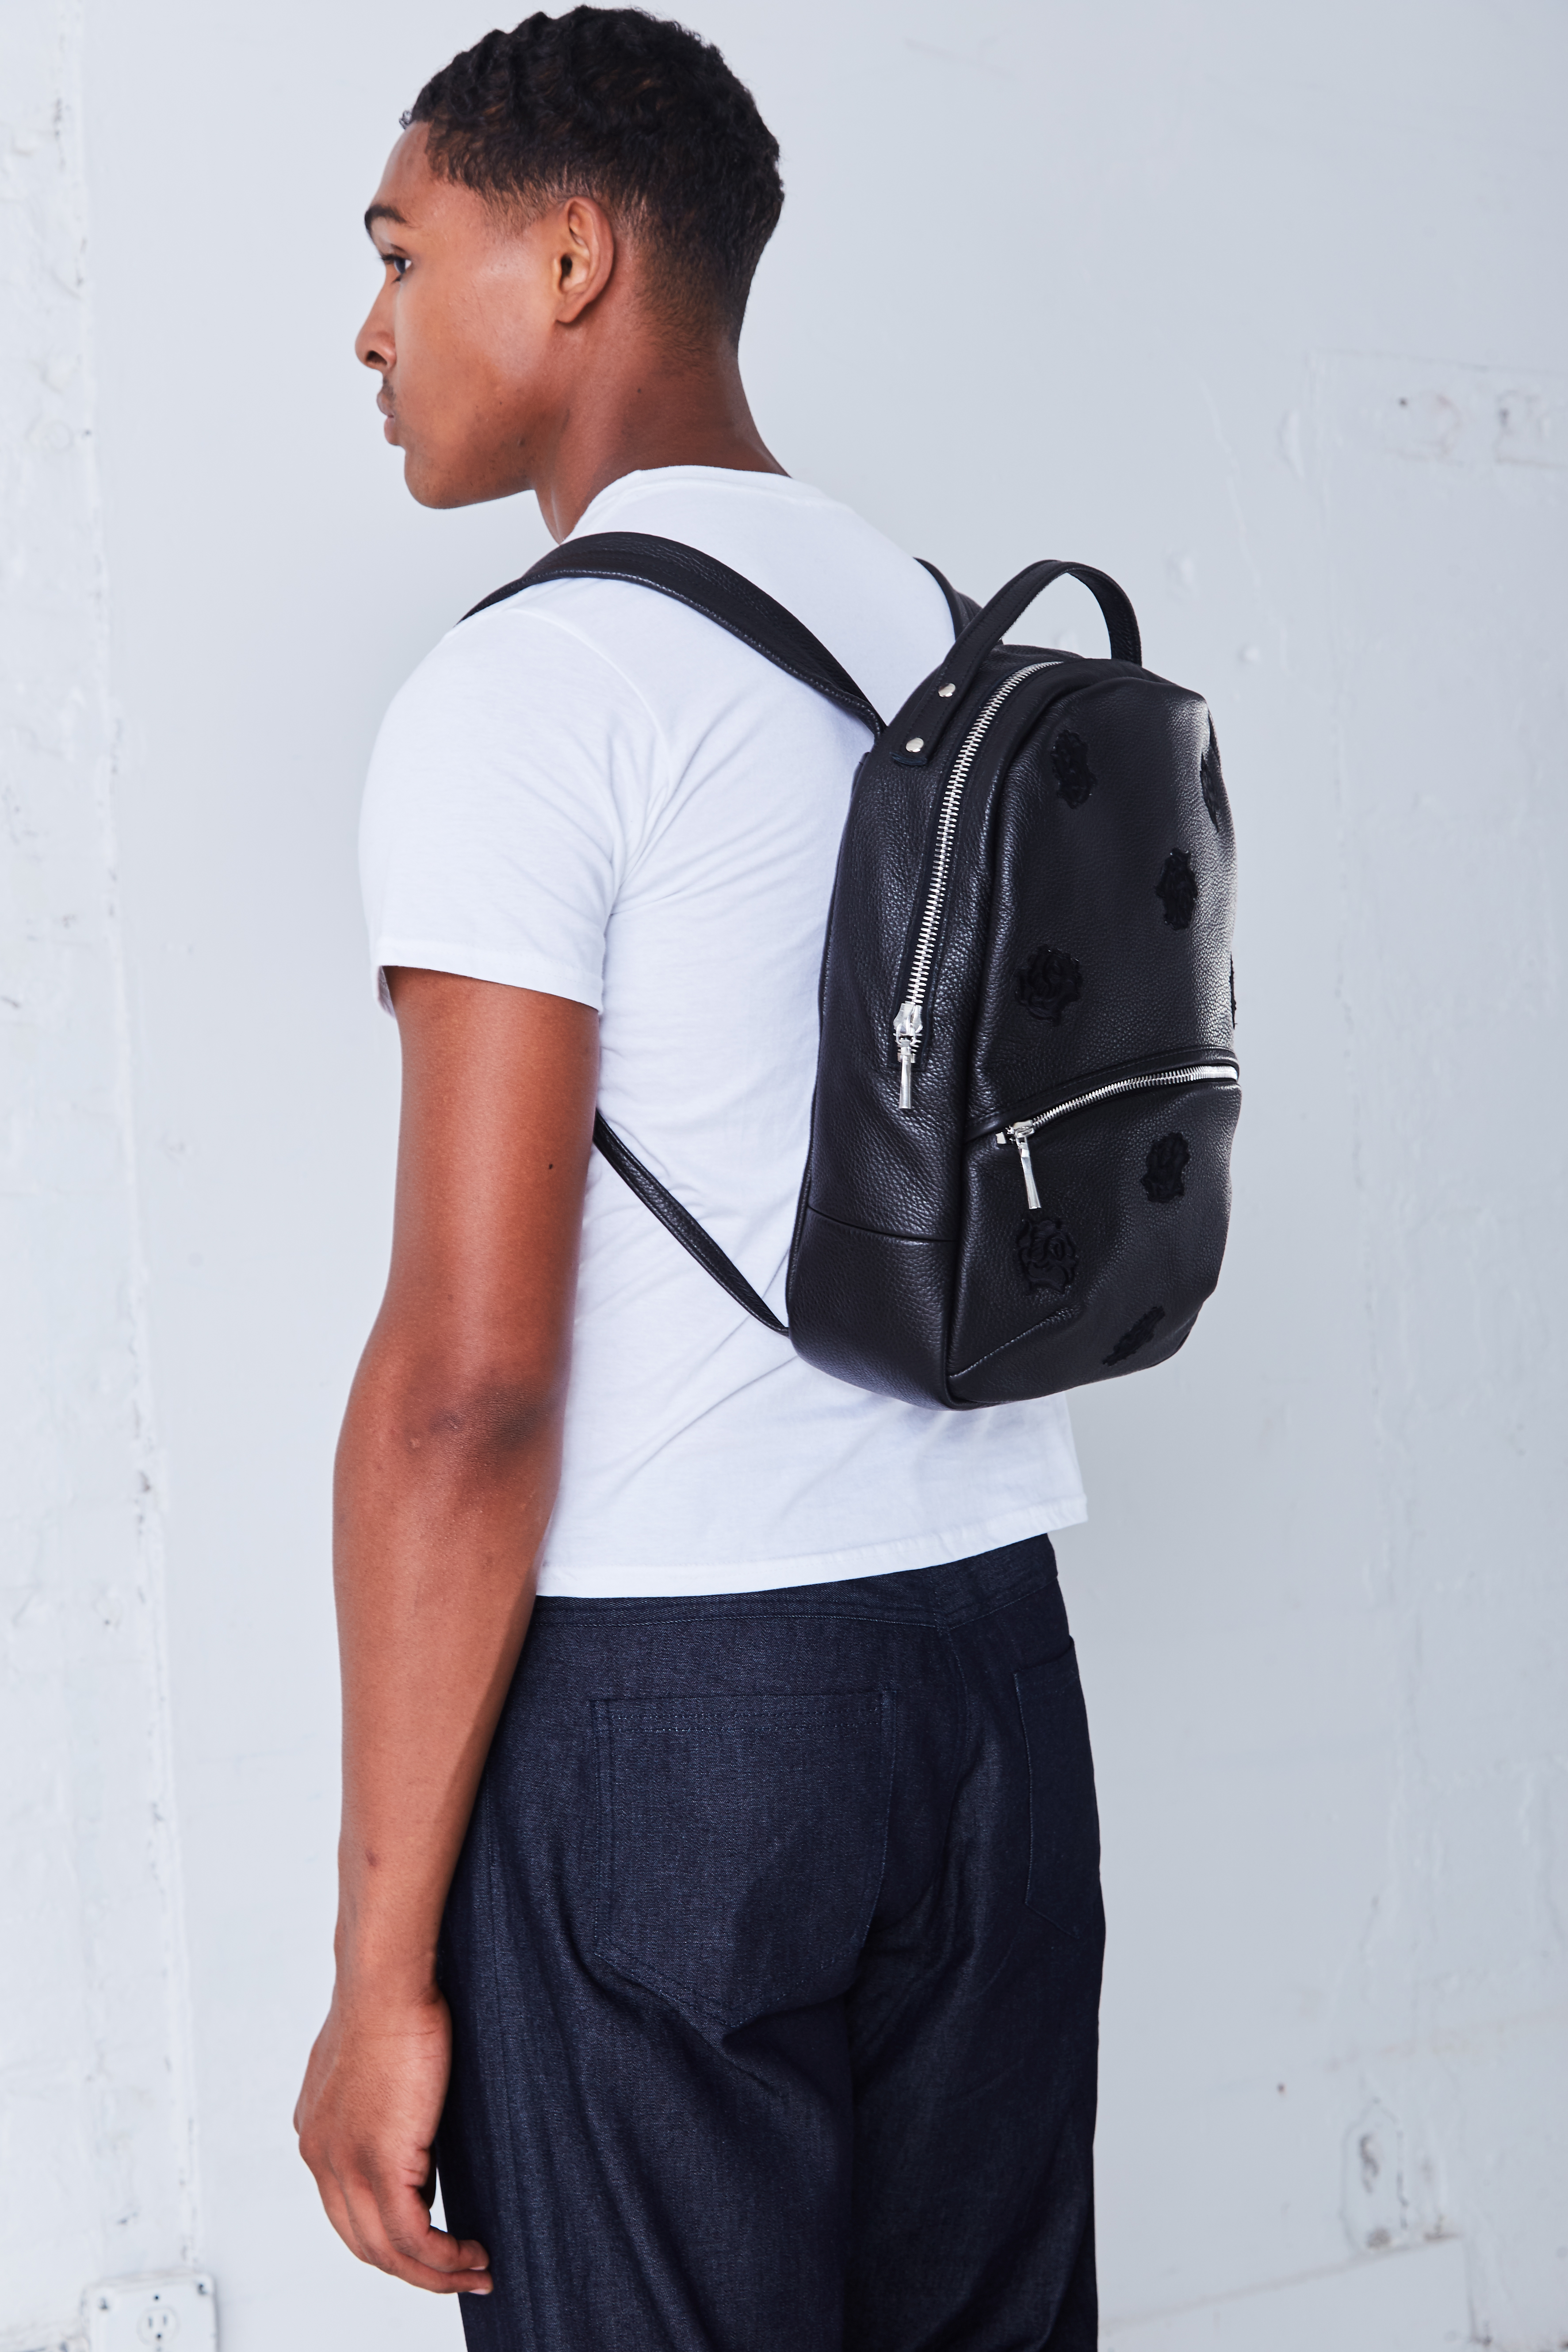 Backpack - Opelle x AC S2